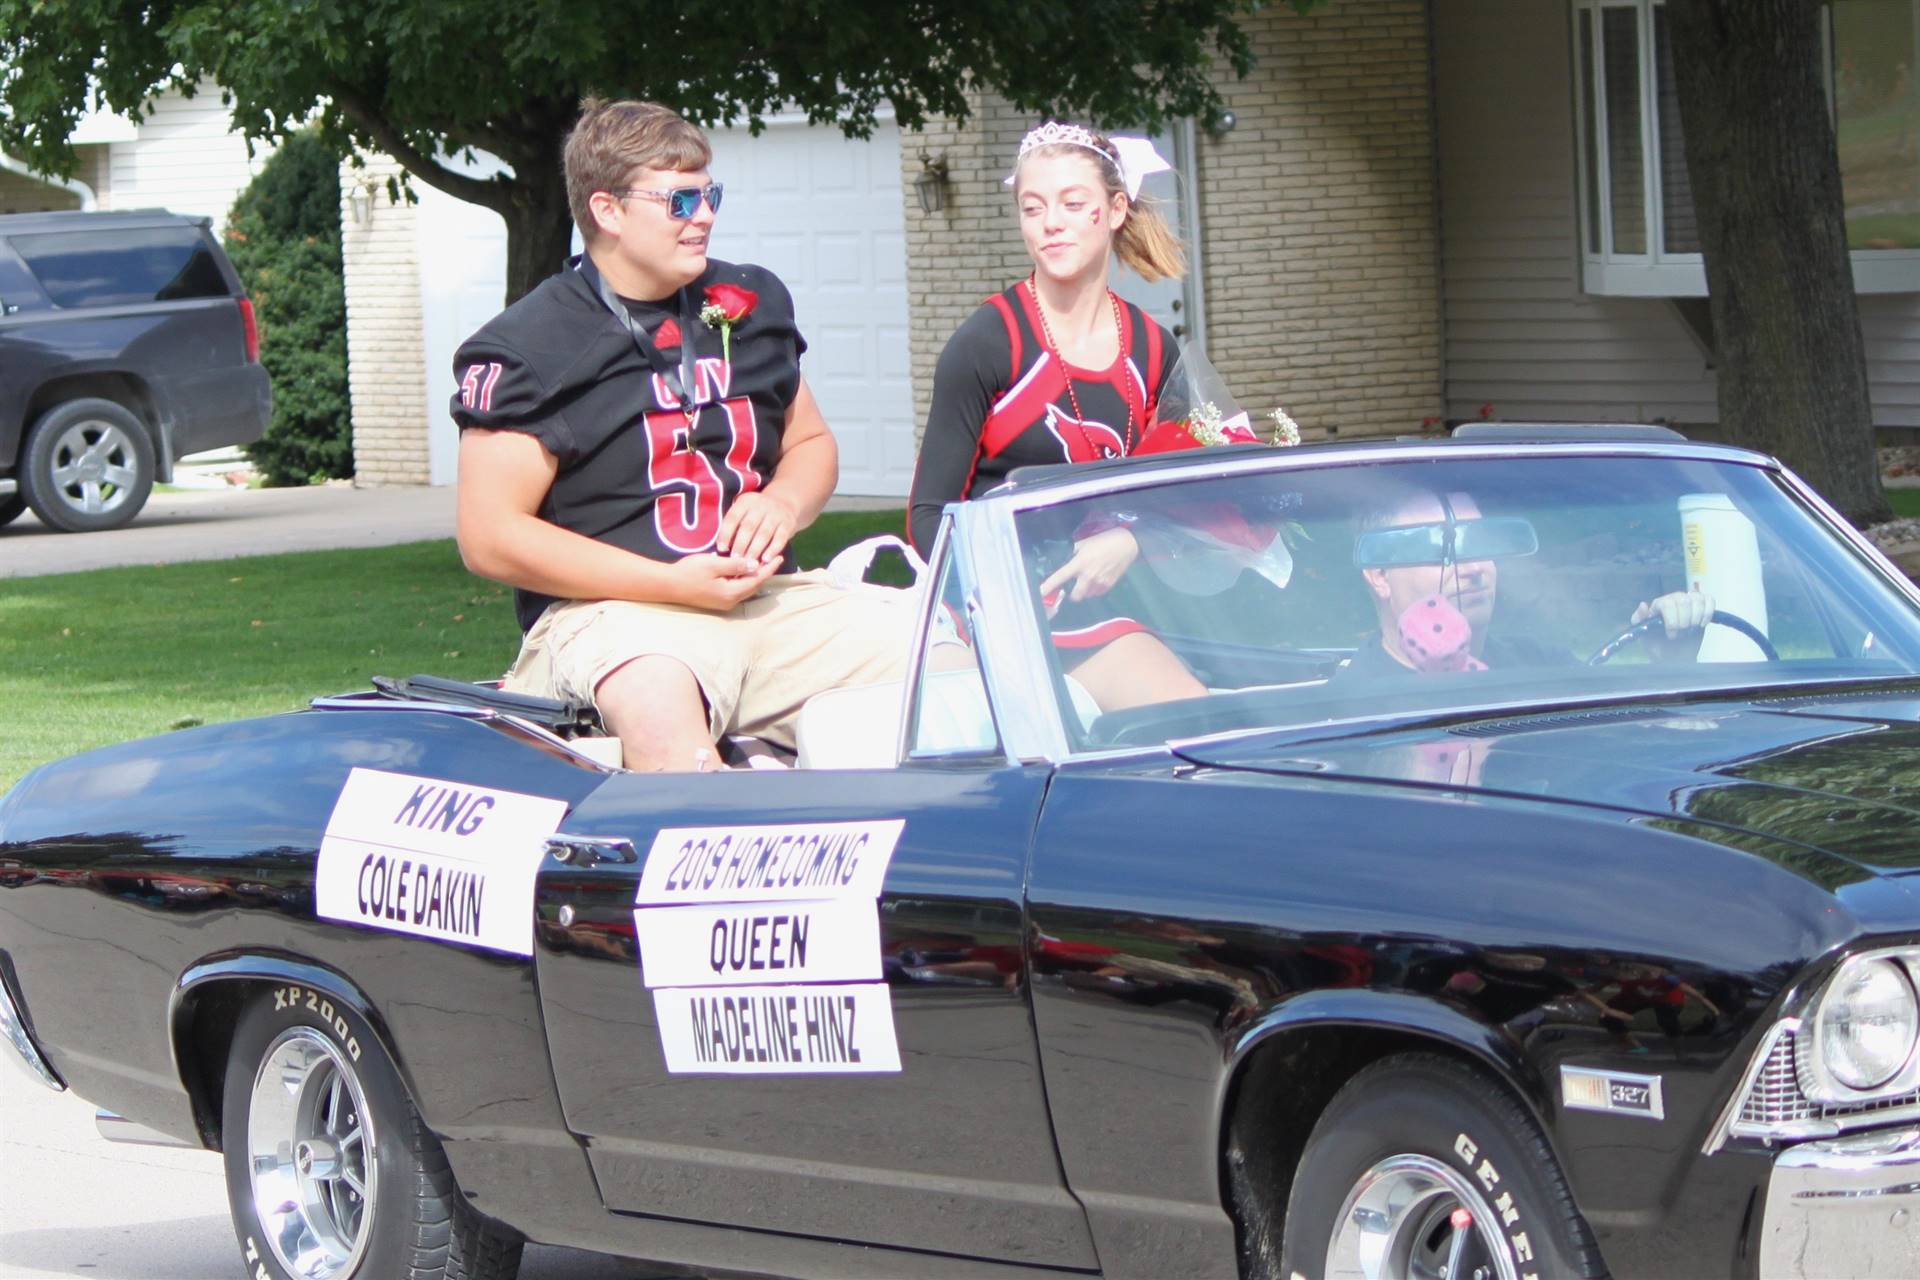 Homecoming king and queen riding in a convertible in parade